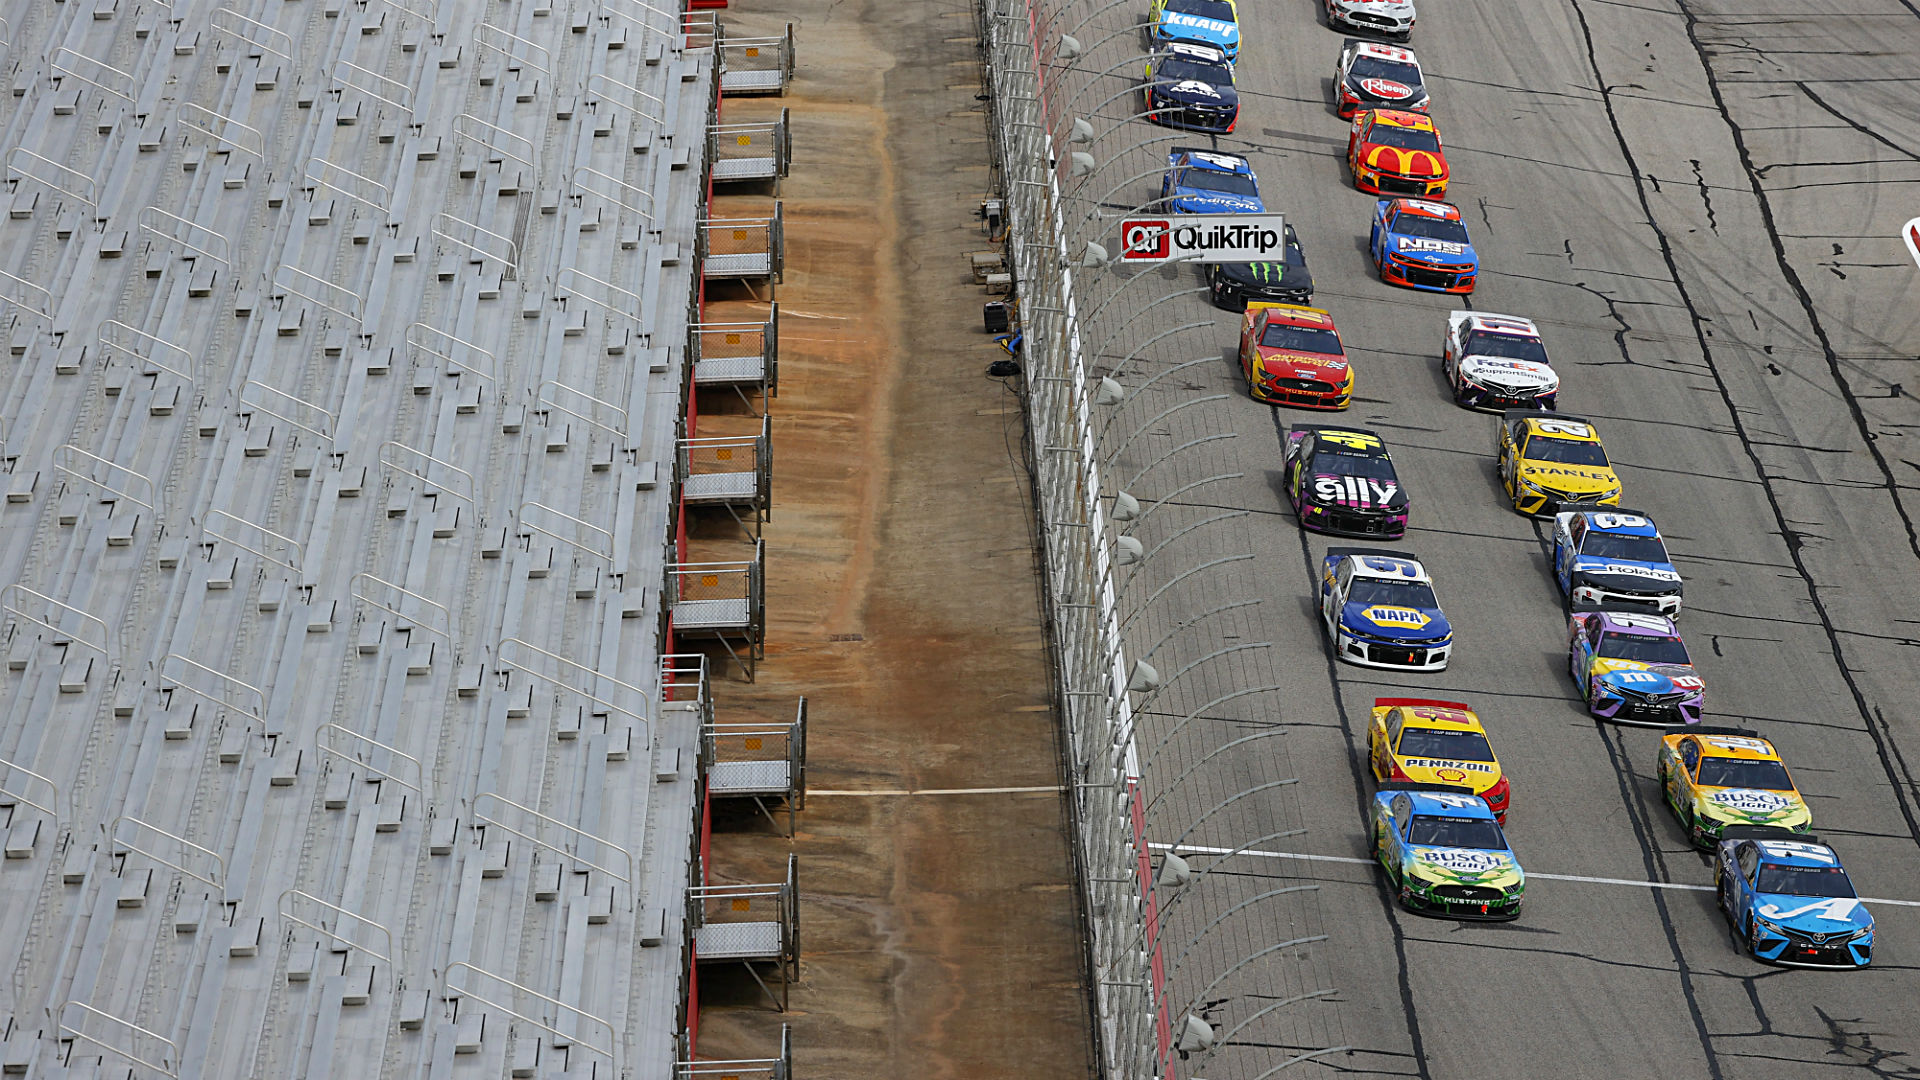 Who won the NASCAR race yesterday? Full results for Sunday's Folds of Honor QuikTrip 500 at Atlanta